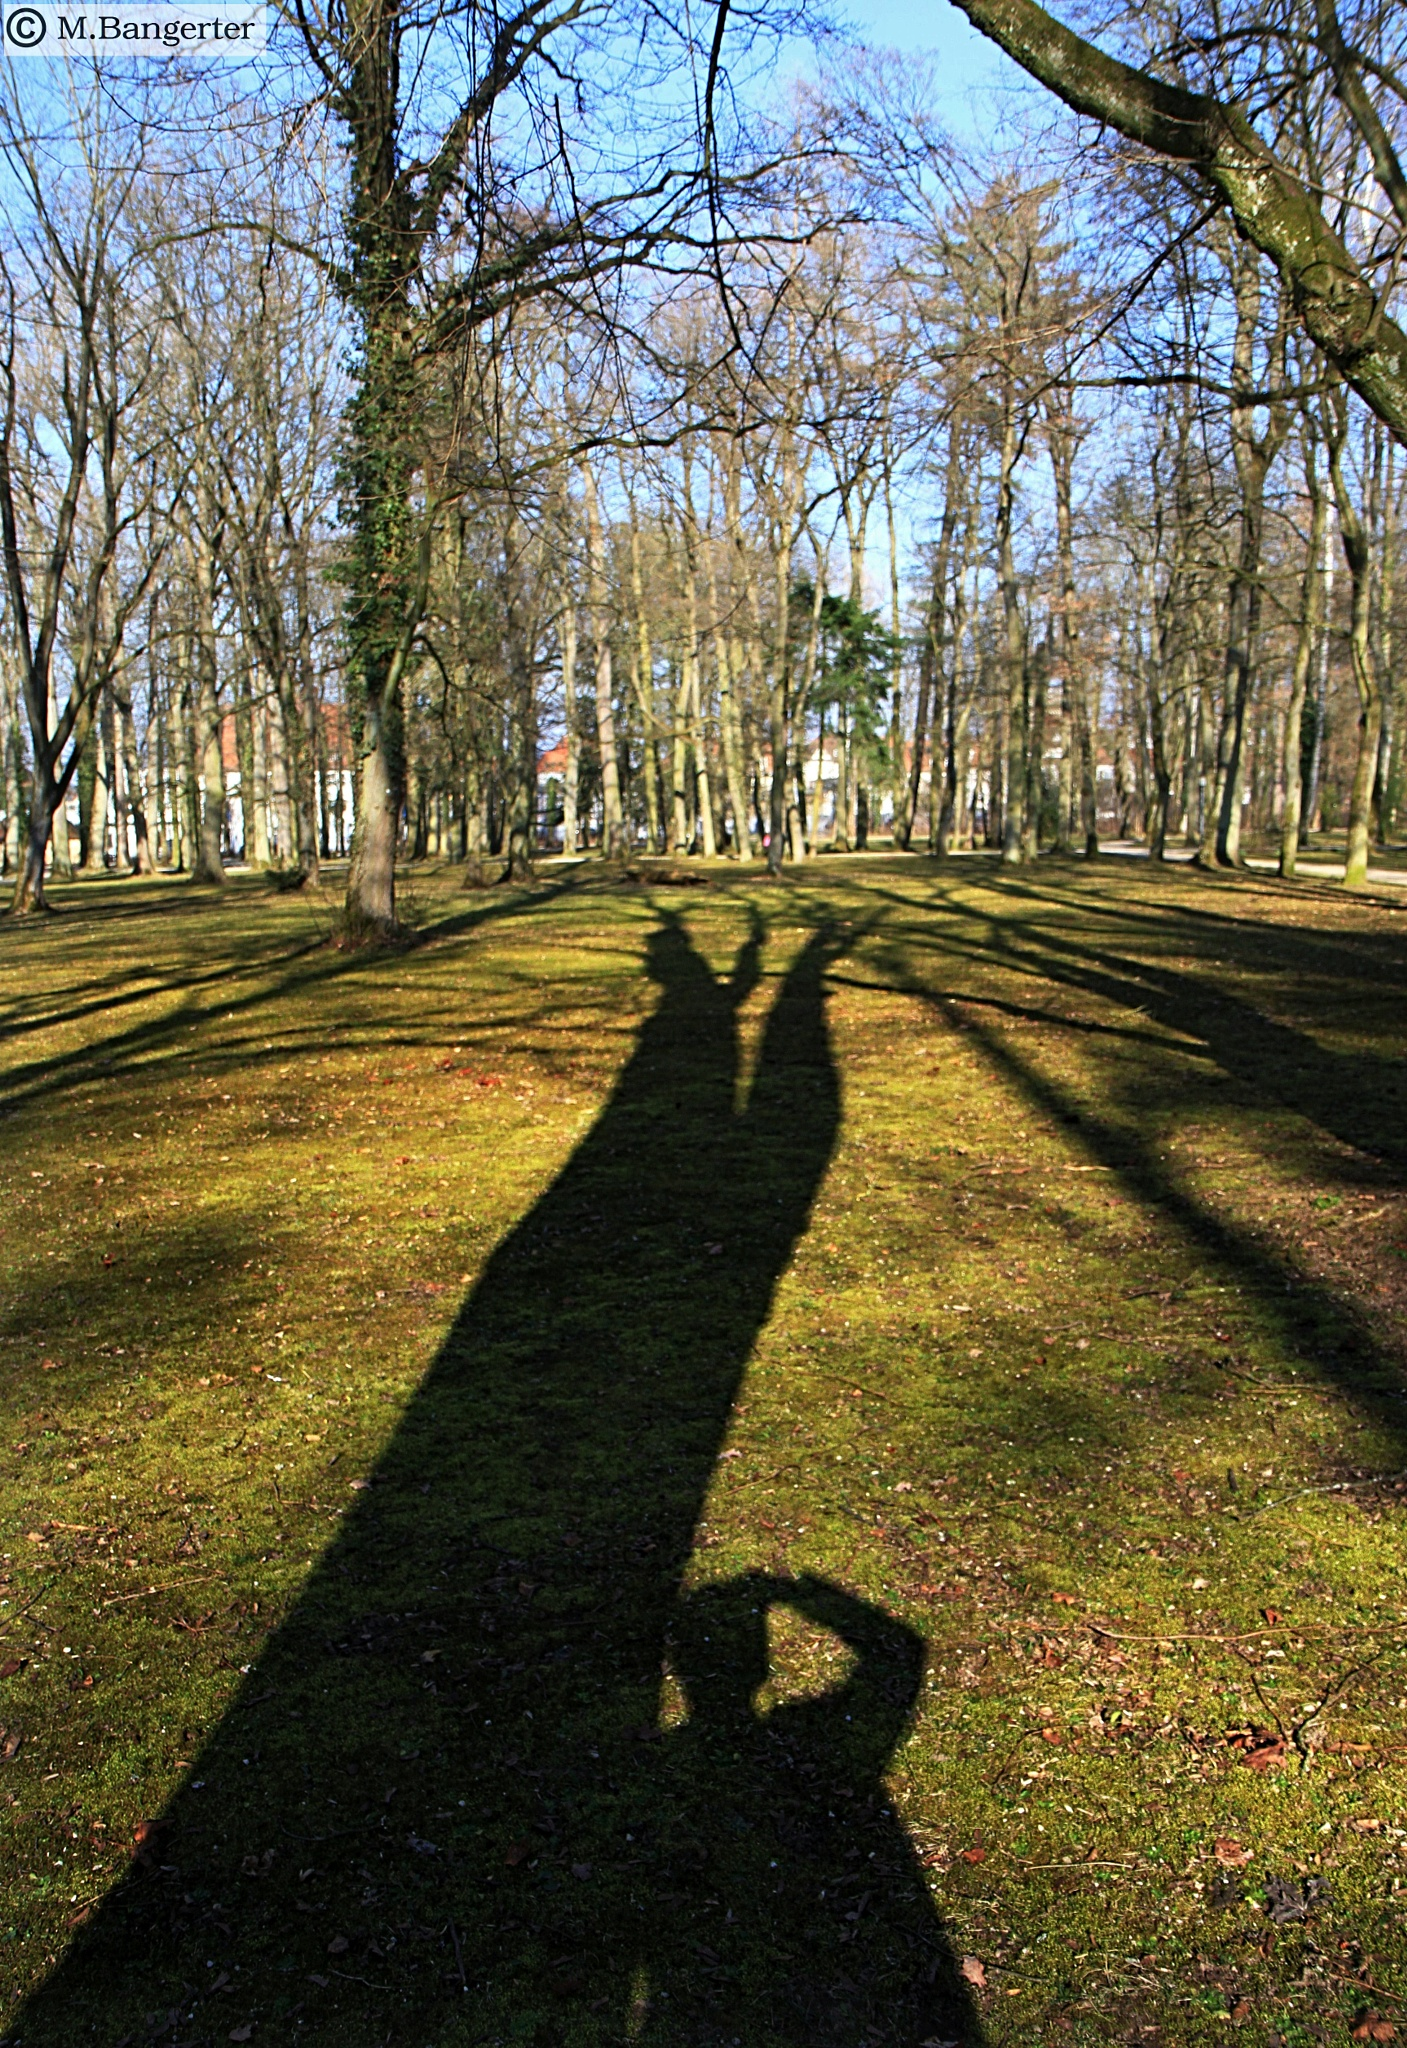 The shadow of the photographer by Michael